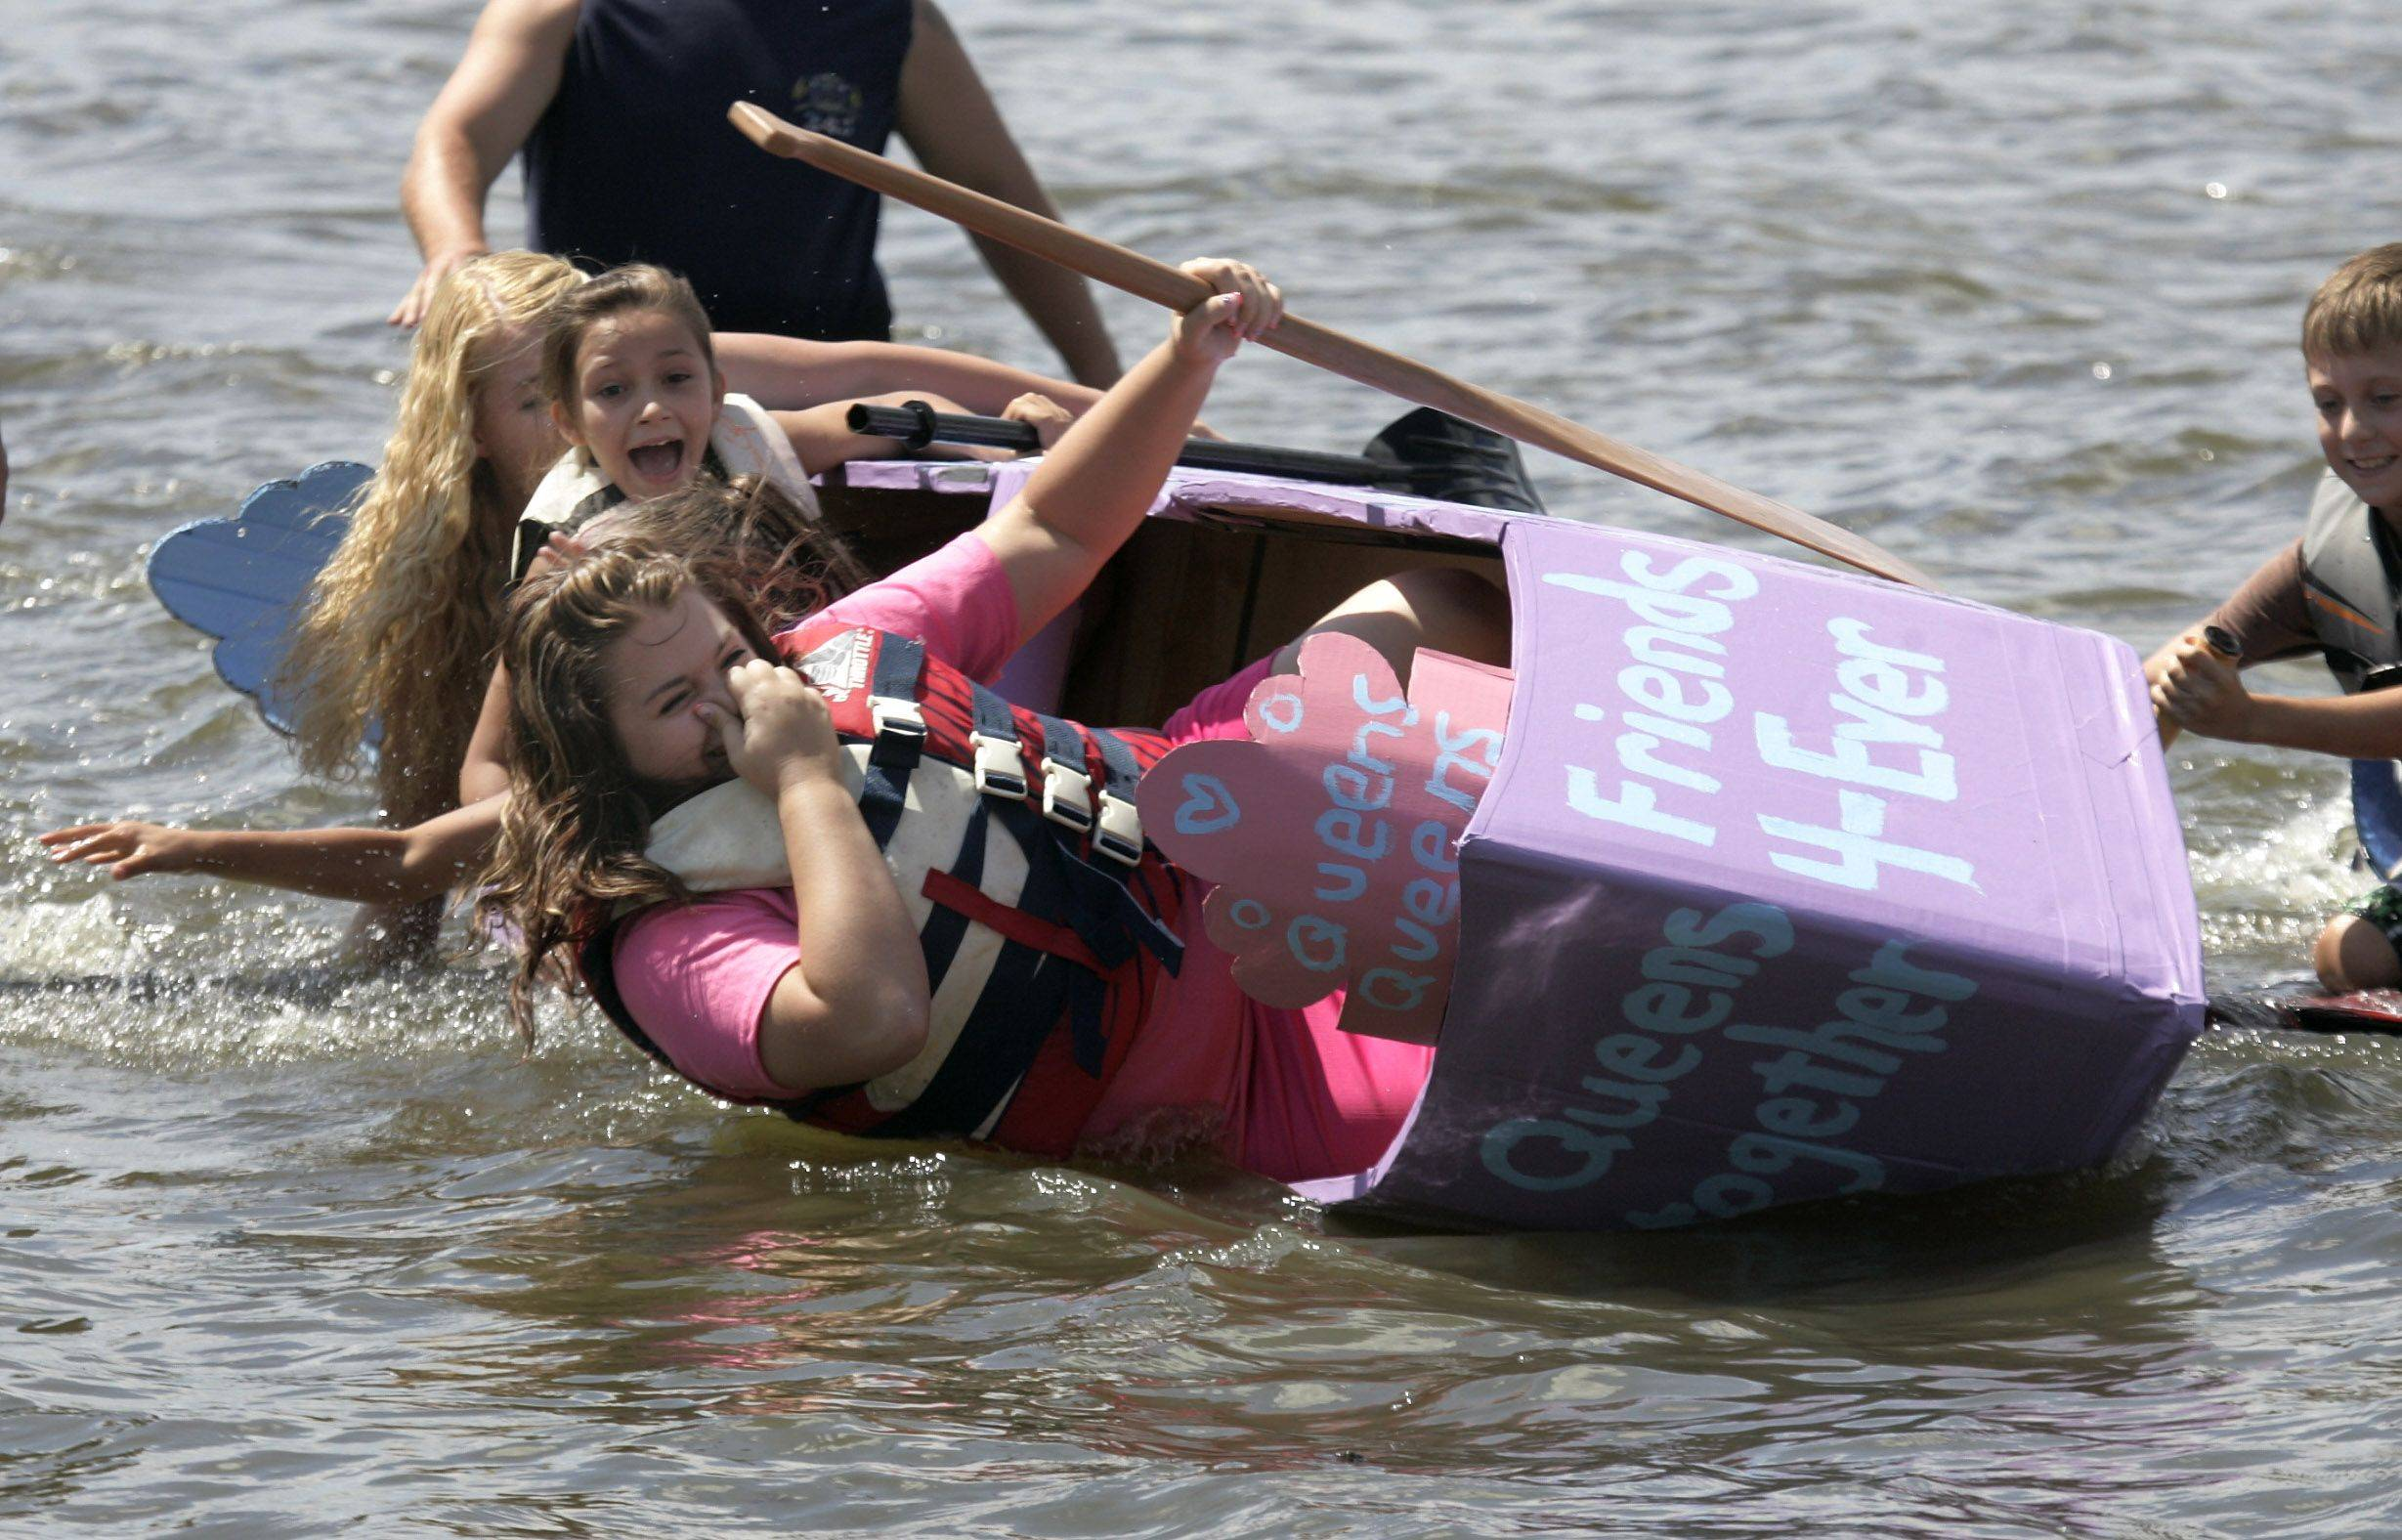 Grant Township Queen Samantha Murphey holds her nose as the �Queen�s Boat� tips during Fox Lake�s 14th Annual Cardboard Cup Regatta on Sunday at Lakefront Park. Also in the boat were Junior Miss Madison Point, Little Miss Lainie Noda, and Teen Miss Katie Rehling.